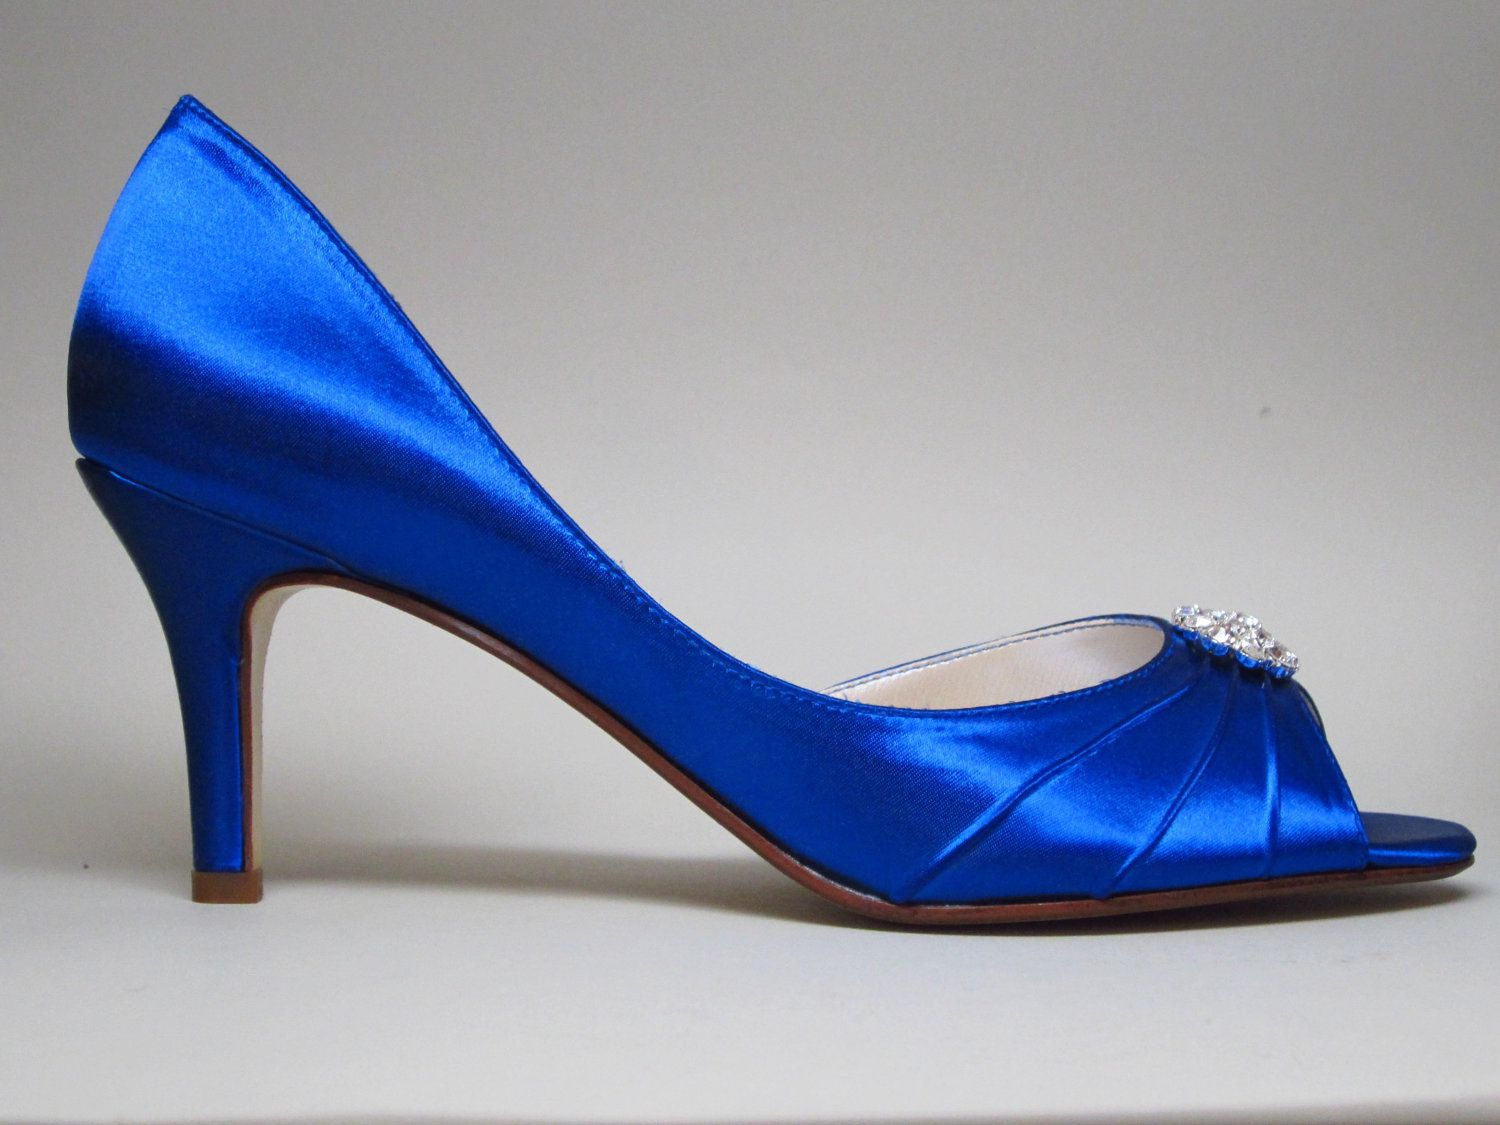 Blue Wedding Shoes Royal Kitten Heels With Simple Rhinestone Adornment 9450